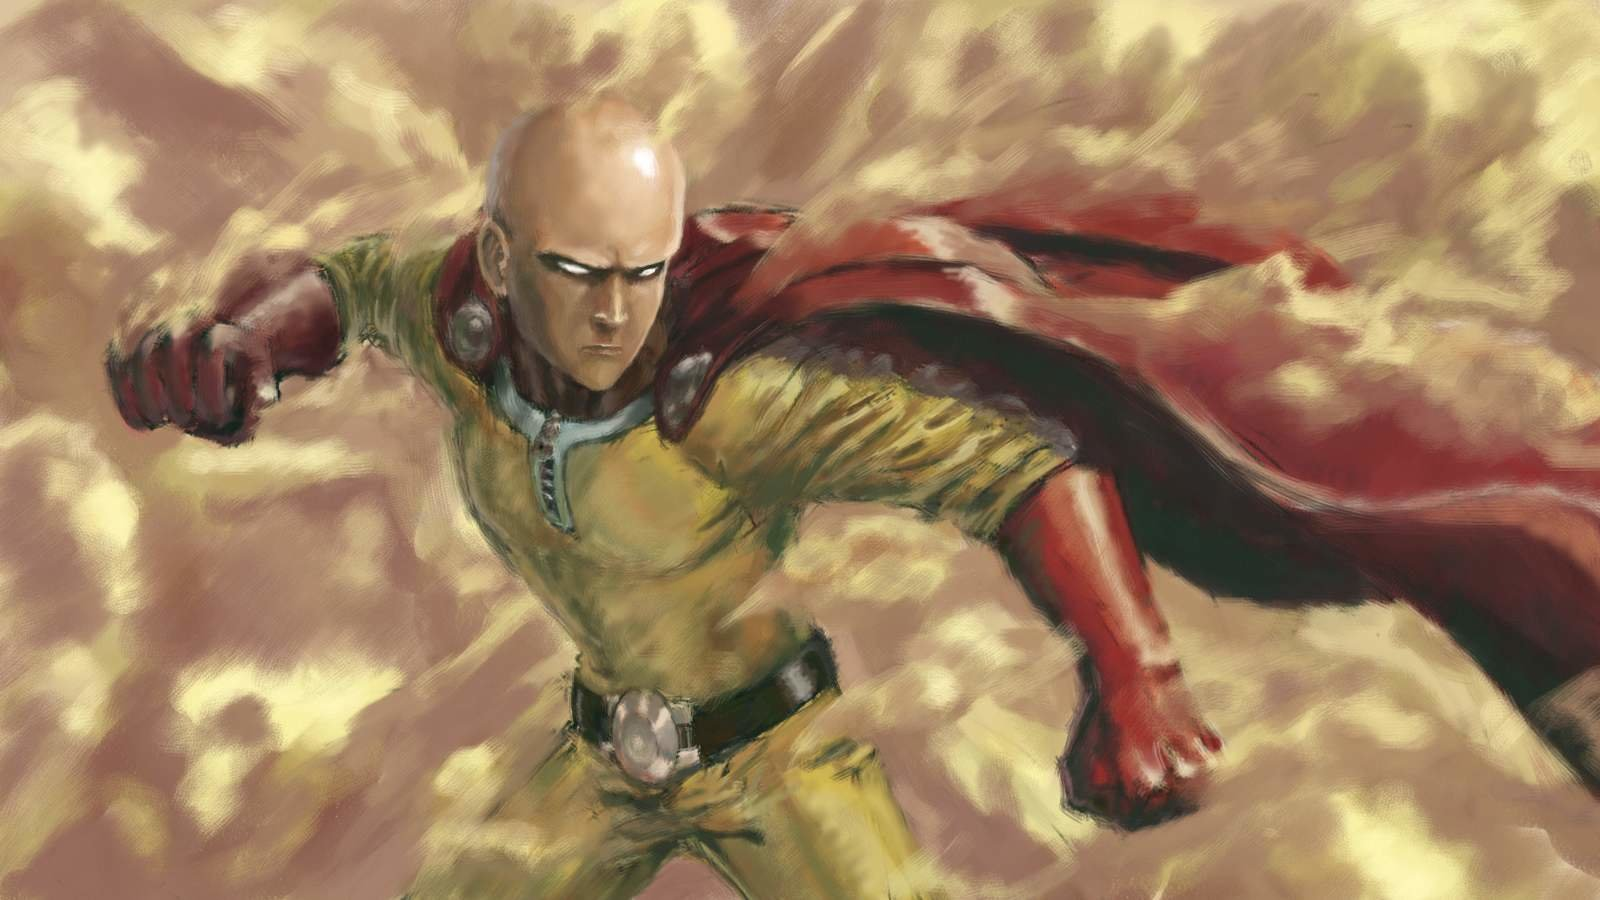 High resolution Saitama (One-Punch Man) hd 1600x900 wallpaper ID:345299 for computer